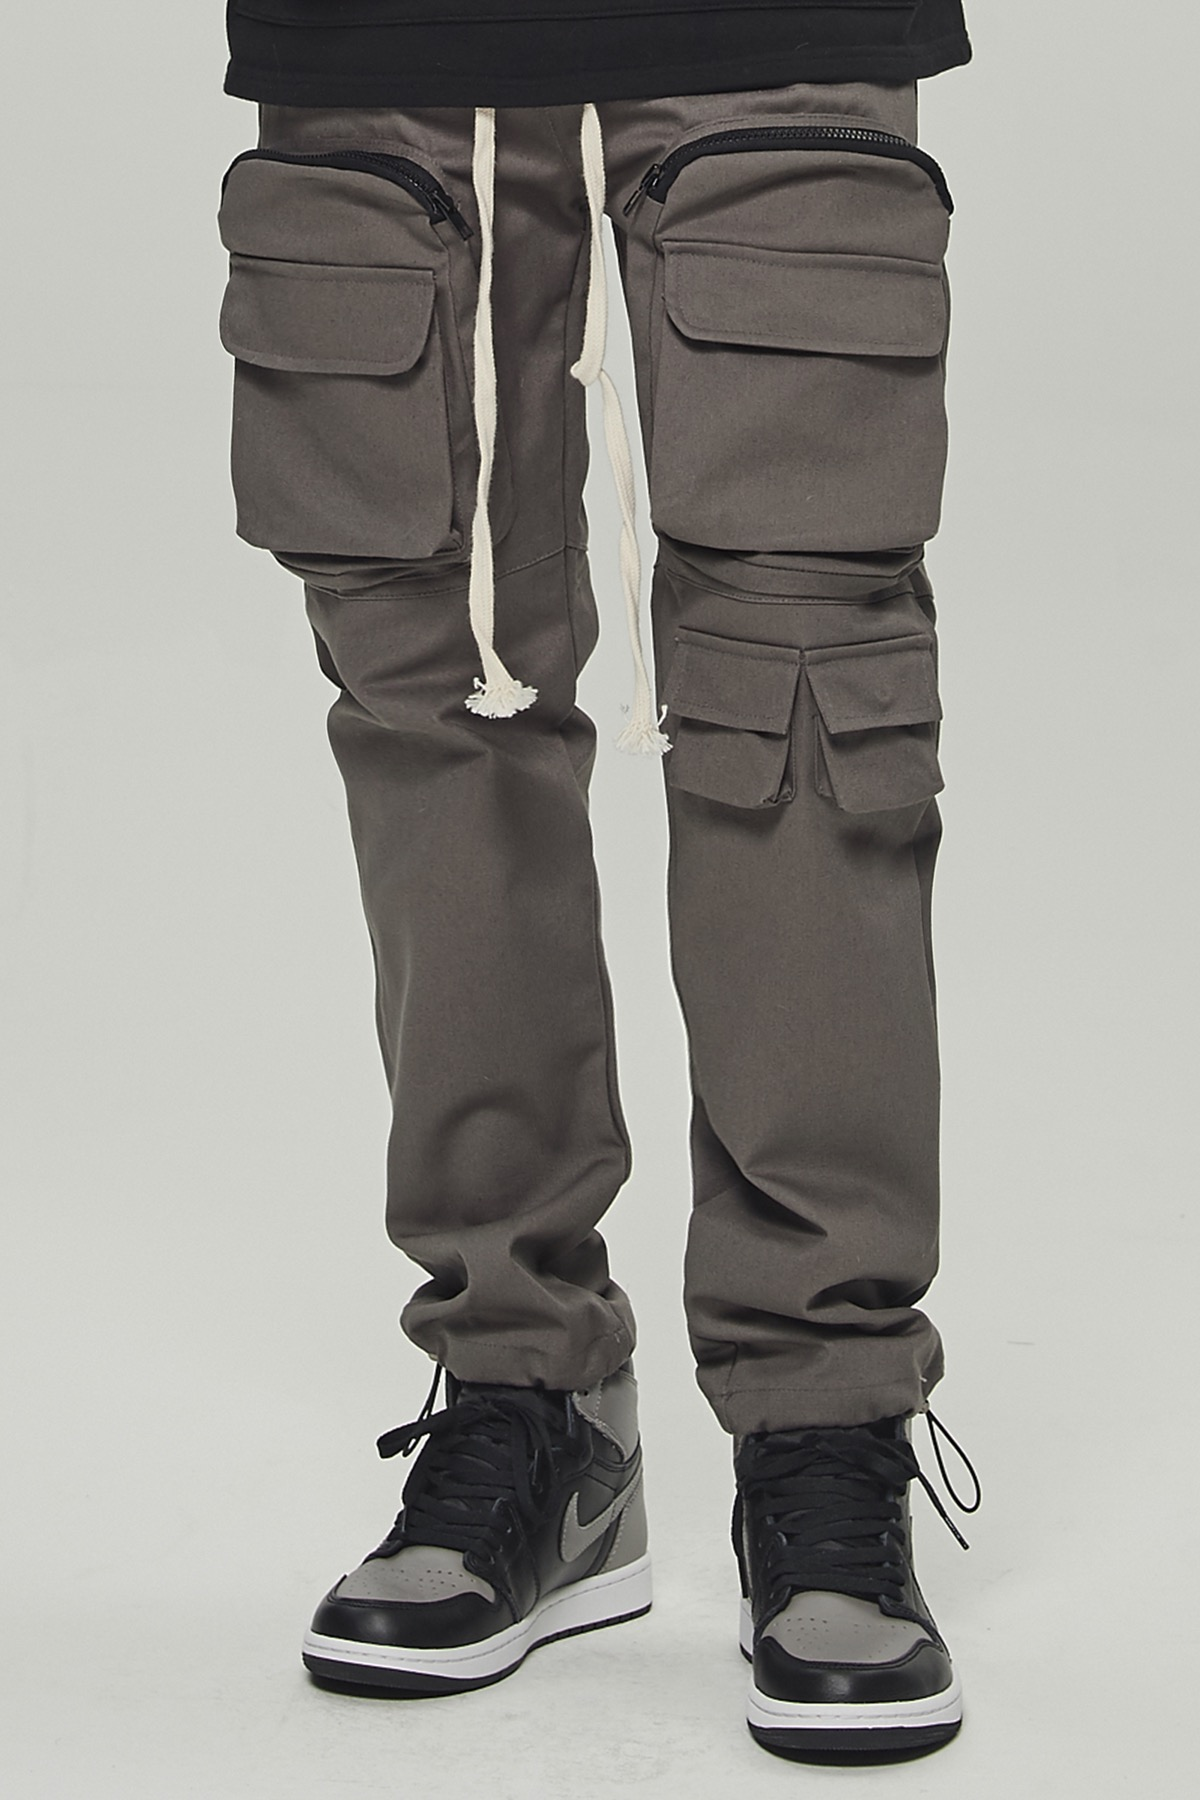 CHARCOAL UTILITY POCKET CARGO STRING PANTS